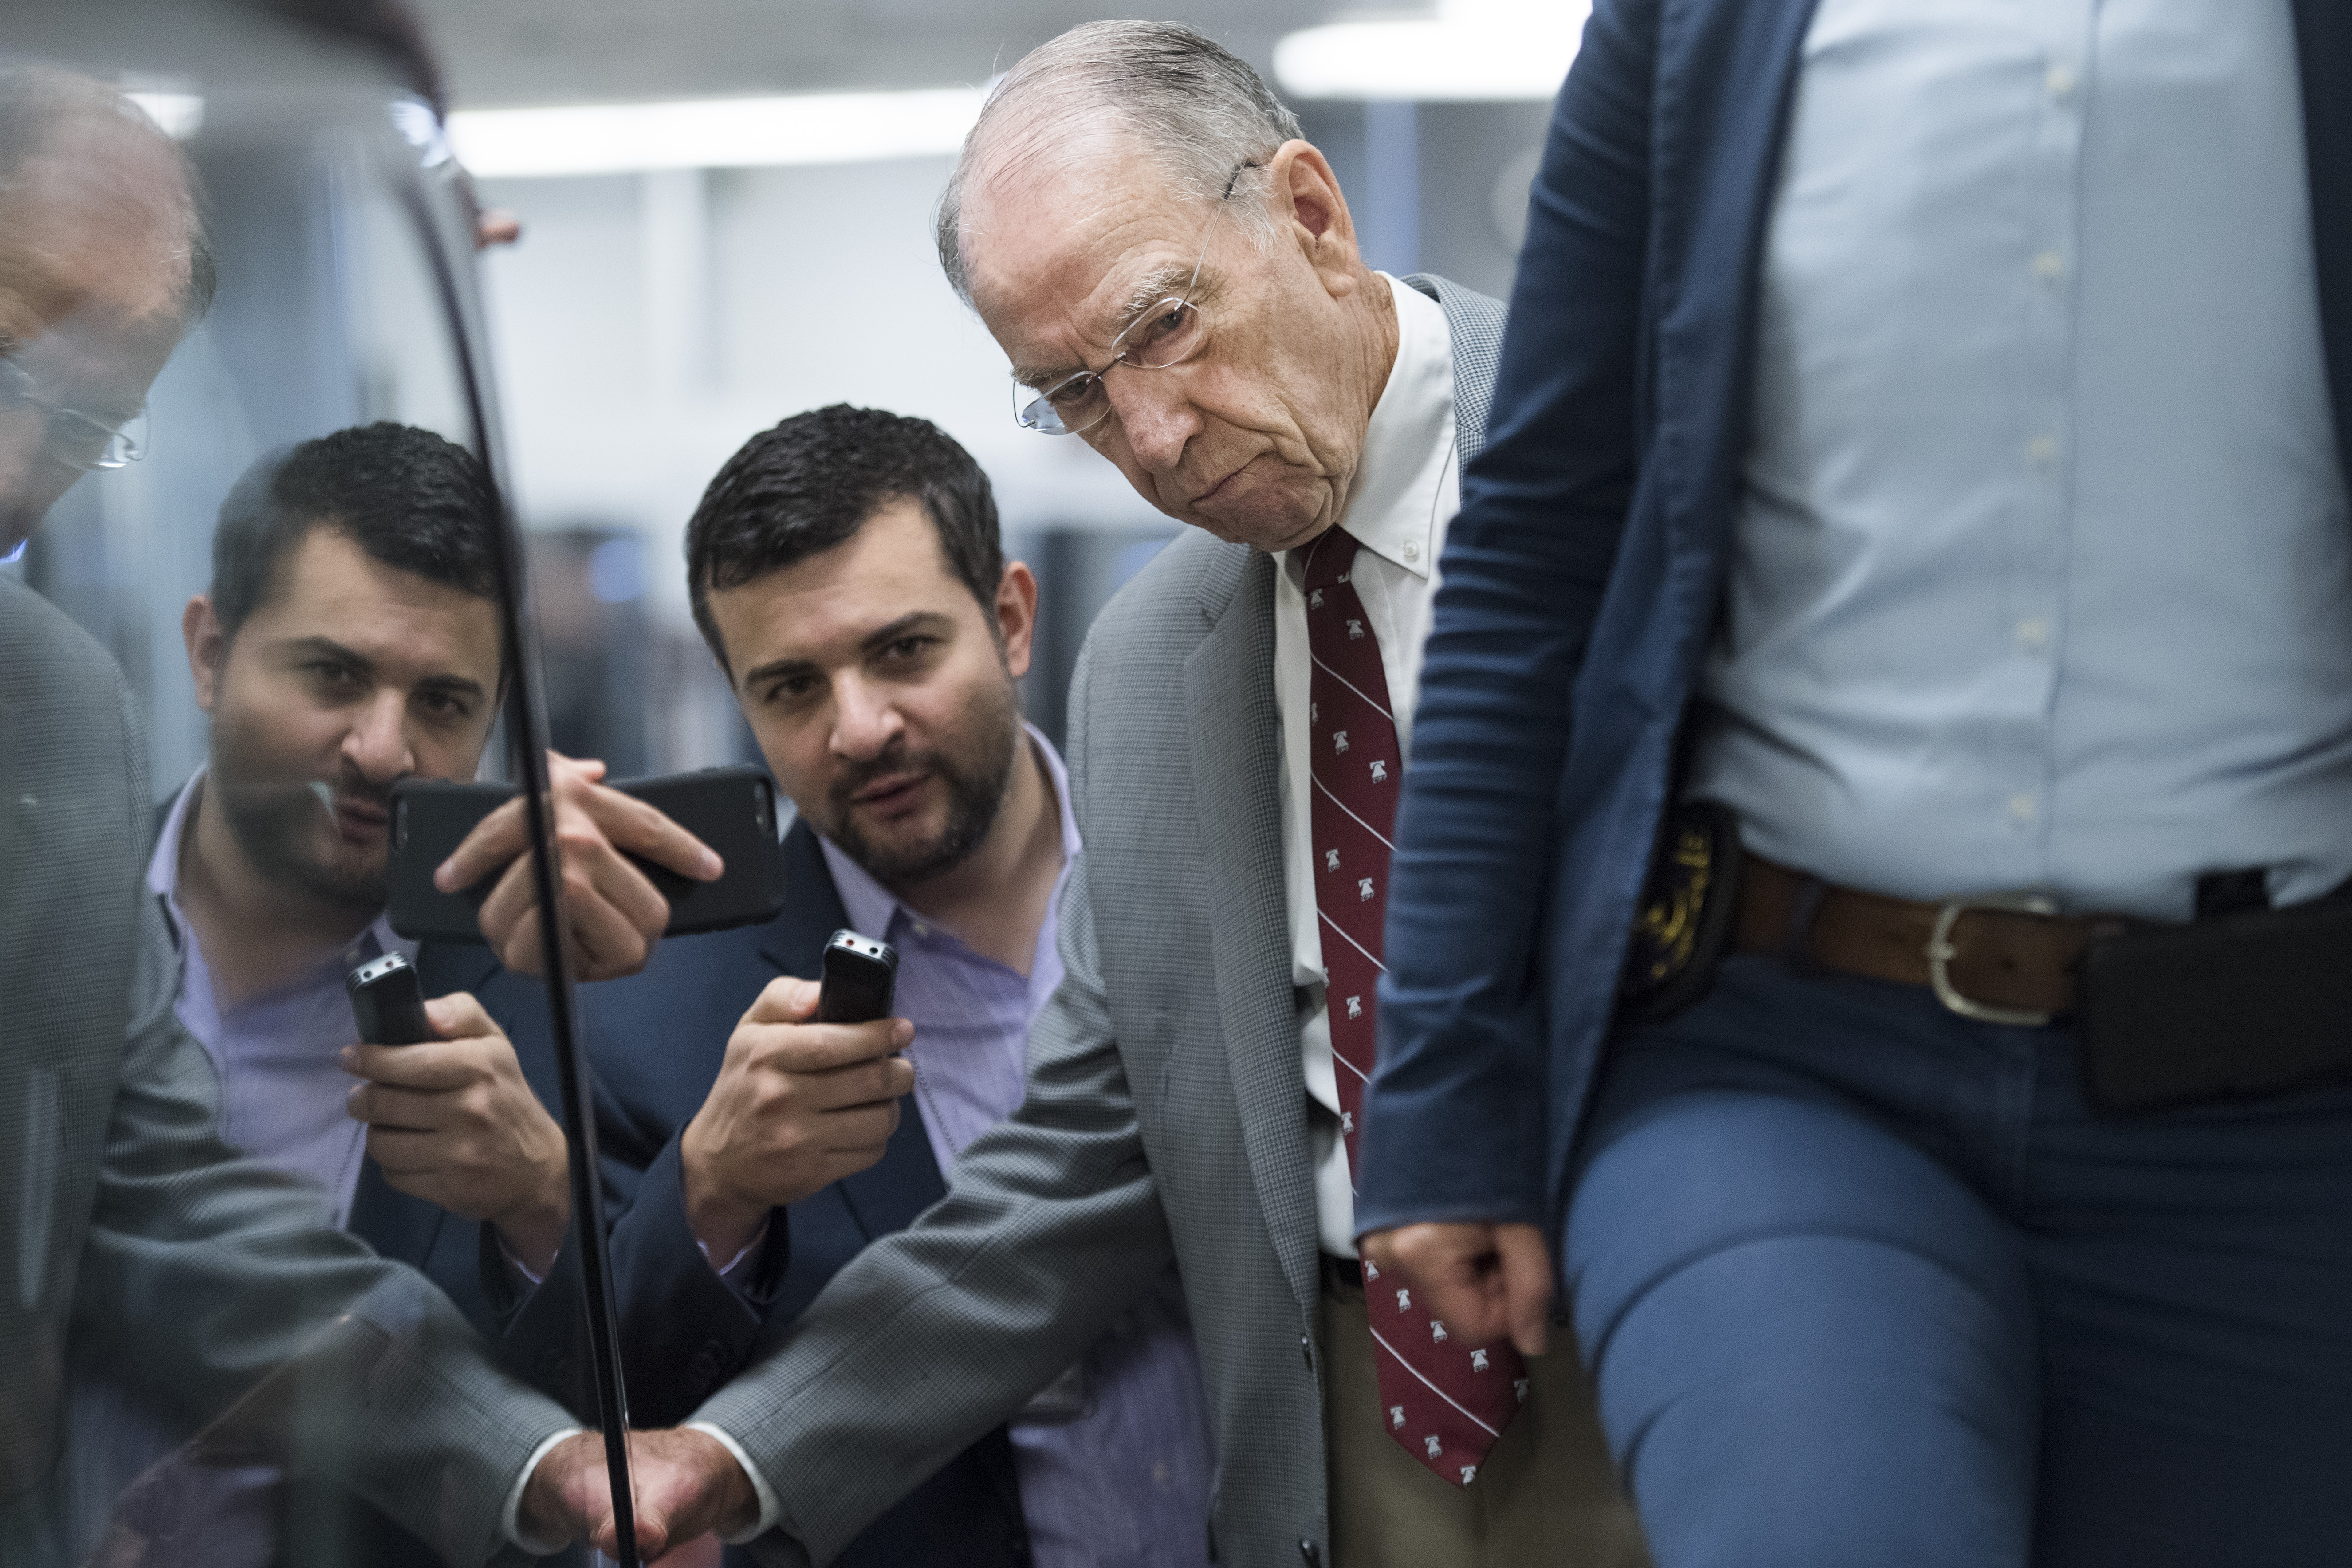 UNITED STATES - JULY 23: Sen. Charles Grassley, R-Iowa, talks with reporters before the Senate Policy luncheons in the Capitol on Tuesday, July 23, 2019. (Photo By Tom Williams/CQ Roll Call)